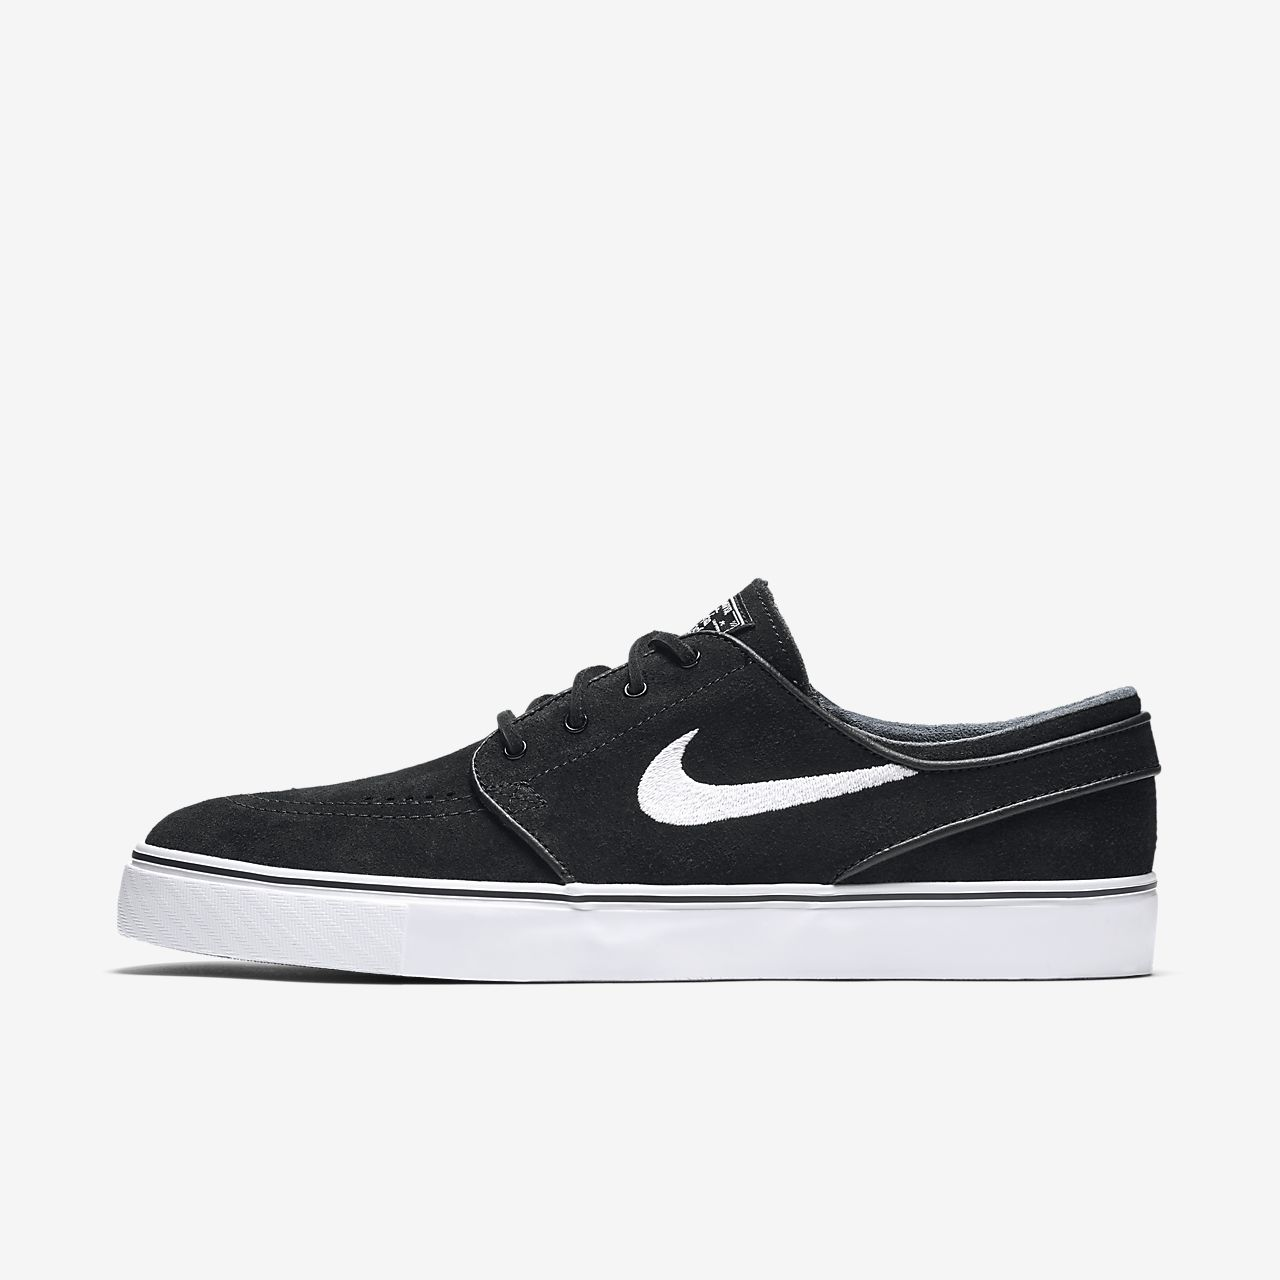 Authentic Nike Zoom Stefan Janoski PR SE Nero Gomma D'ORO TG UK 6 EUR 40 US 7